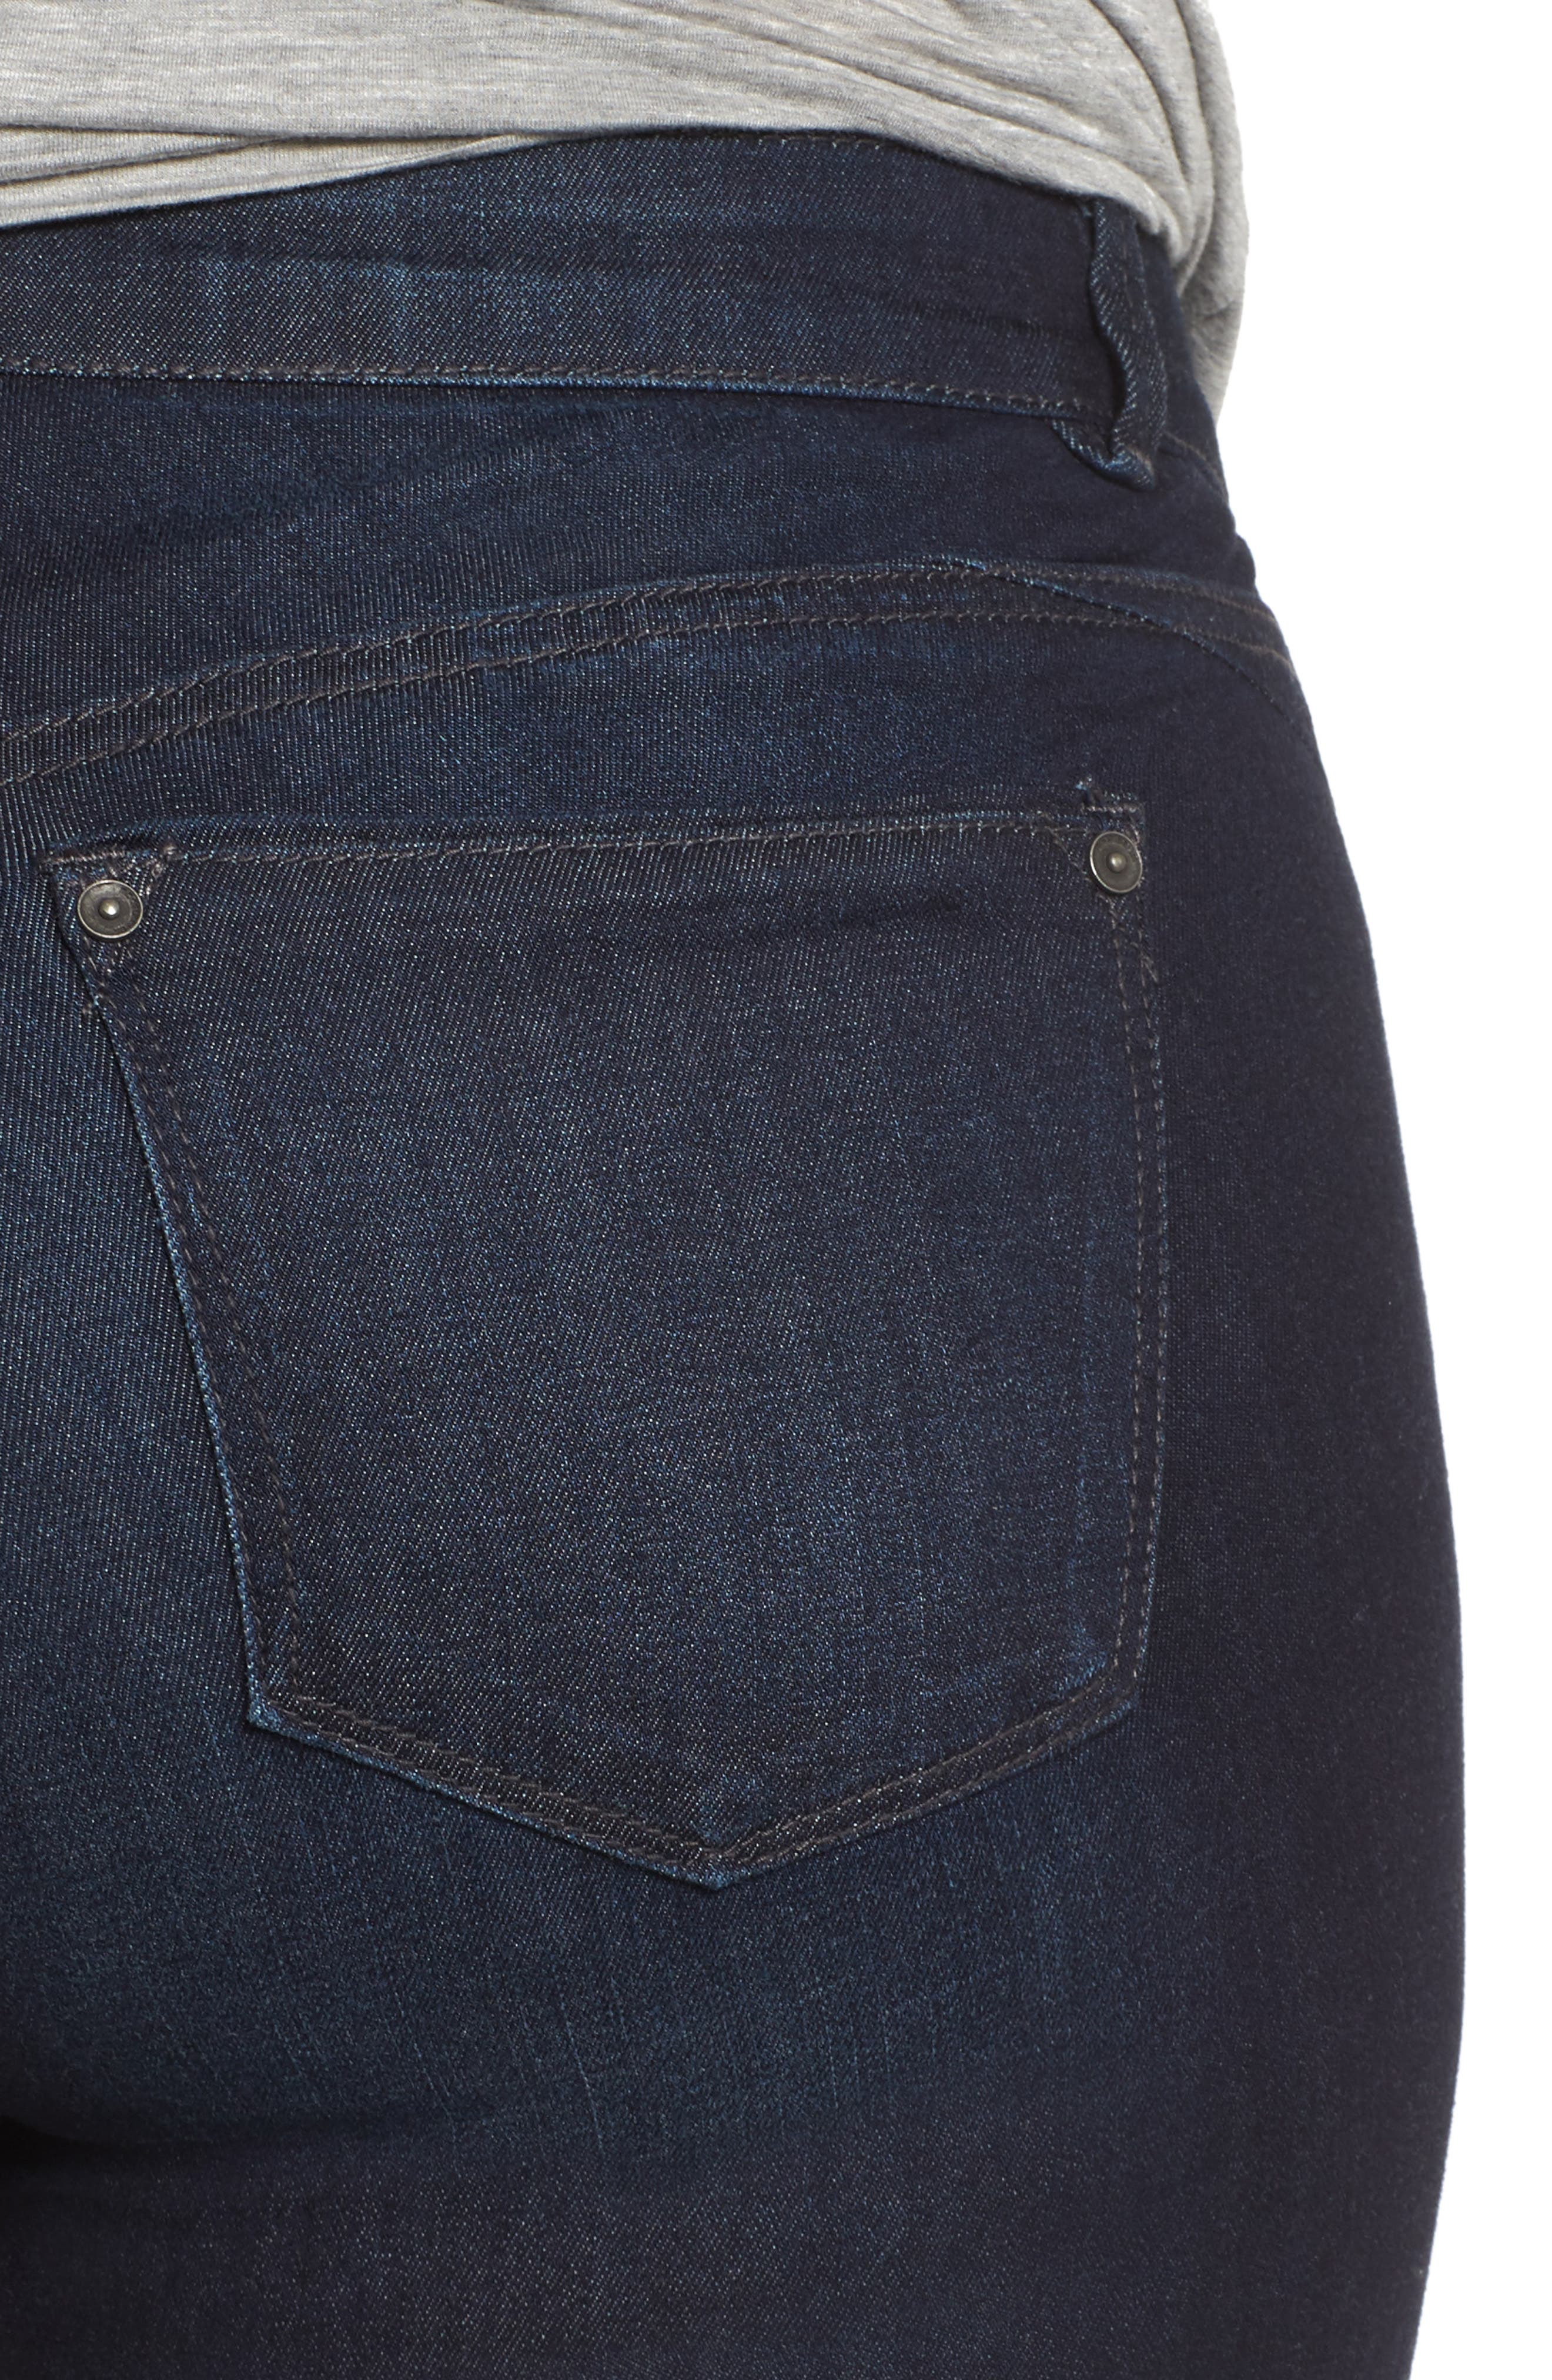 Alternate Image 4  - Wit & Wisdom Ab-solution Ankle Skimmer Jeans (Plus Size) (Nordstrom Exclusive)